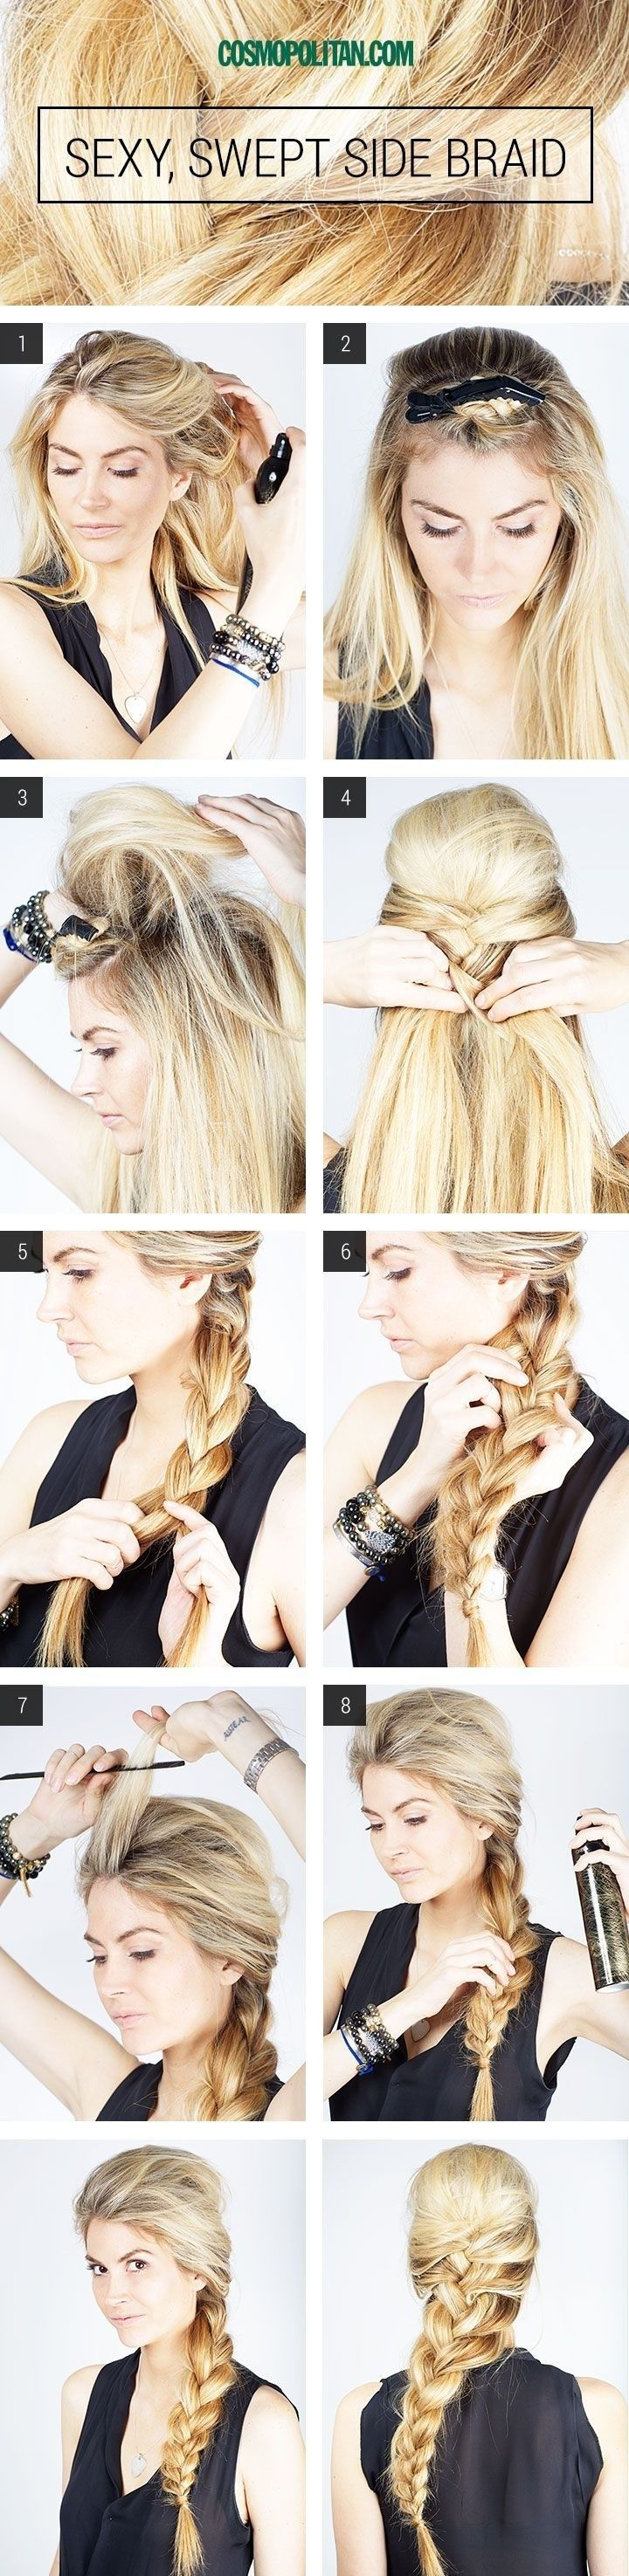 Side-swept Braid Hair You Won't Miss: Hair Tutorials - Pretty Designs